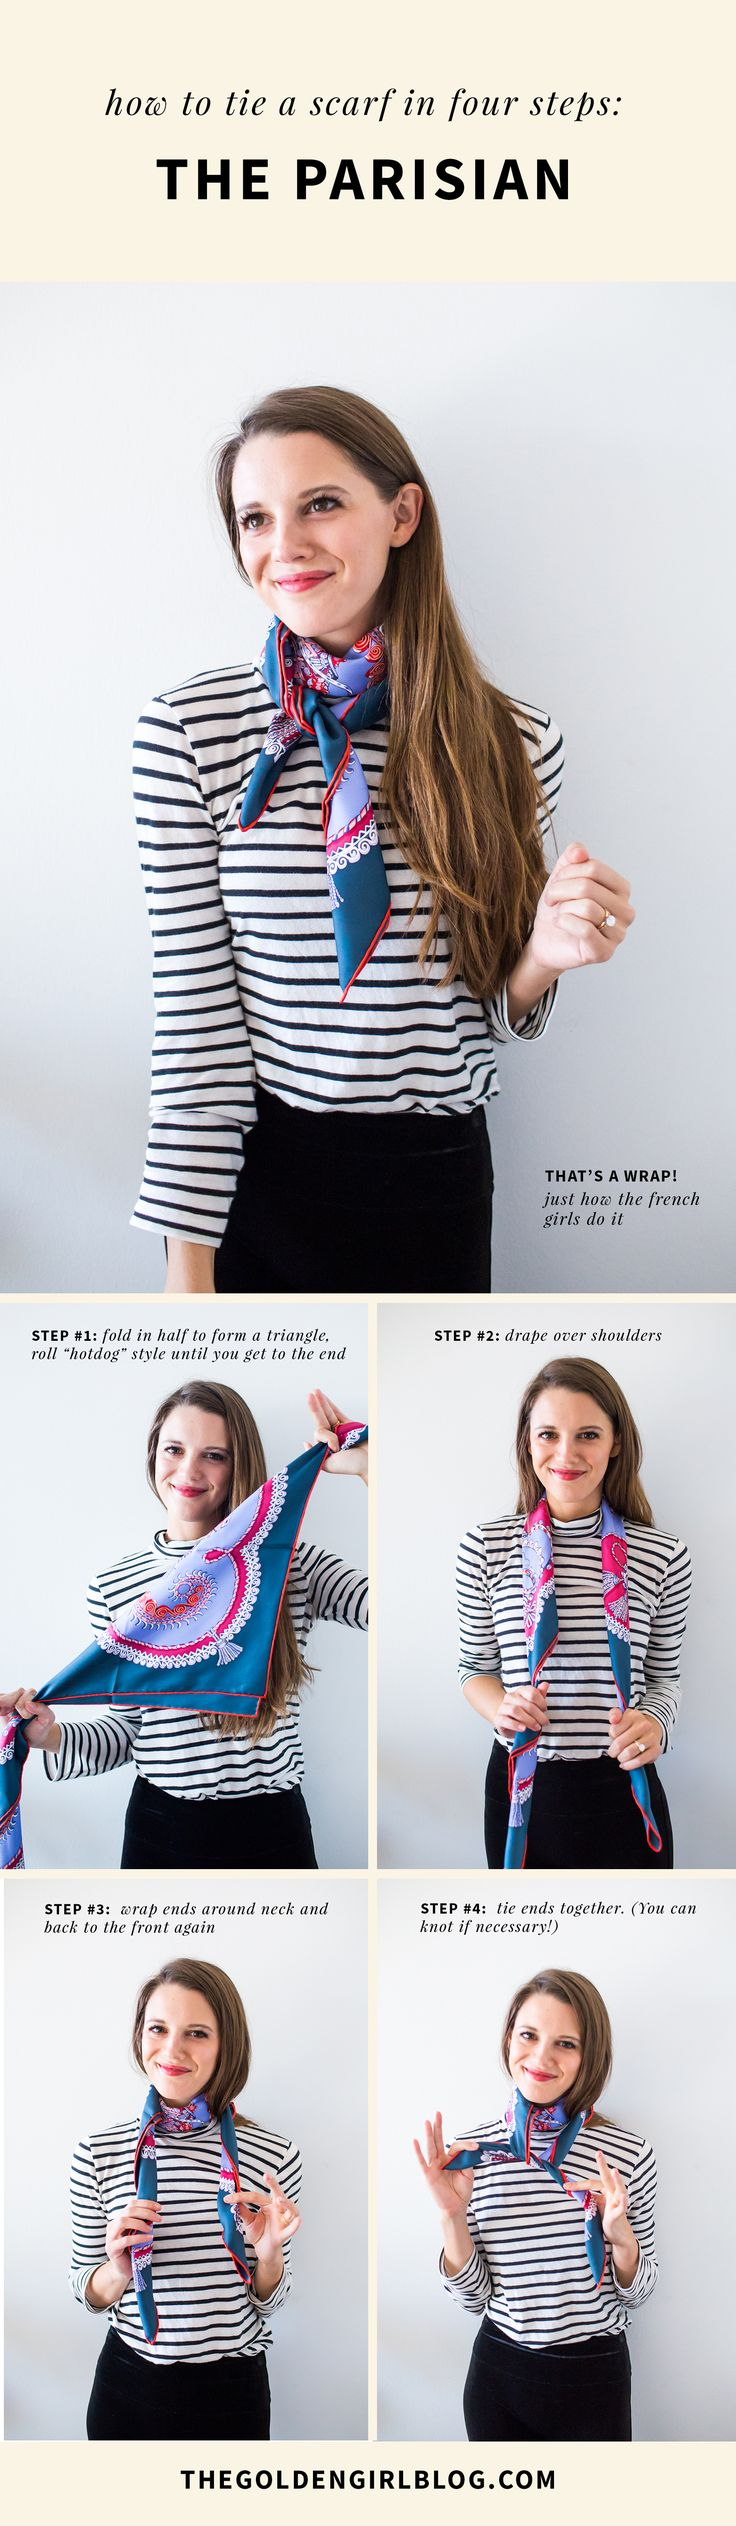 How to tie a scarf French style. French women always seem so impeccably chic and stylish without ever trying too hard. See how to tie a french scarf and how to wear a scarf two ways.